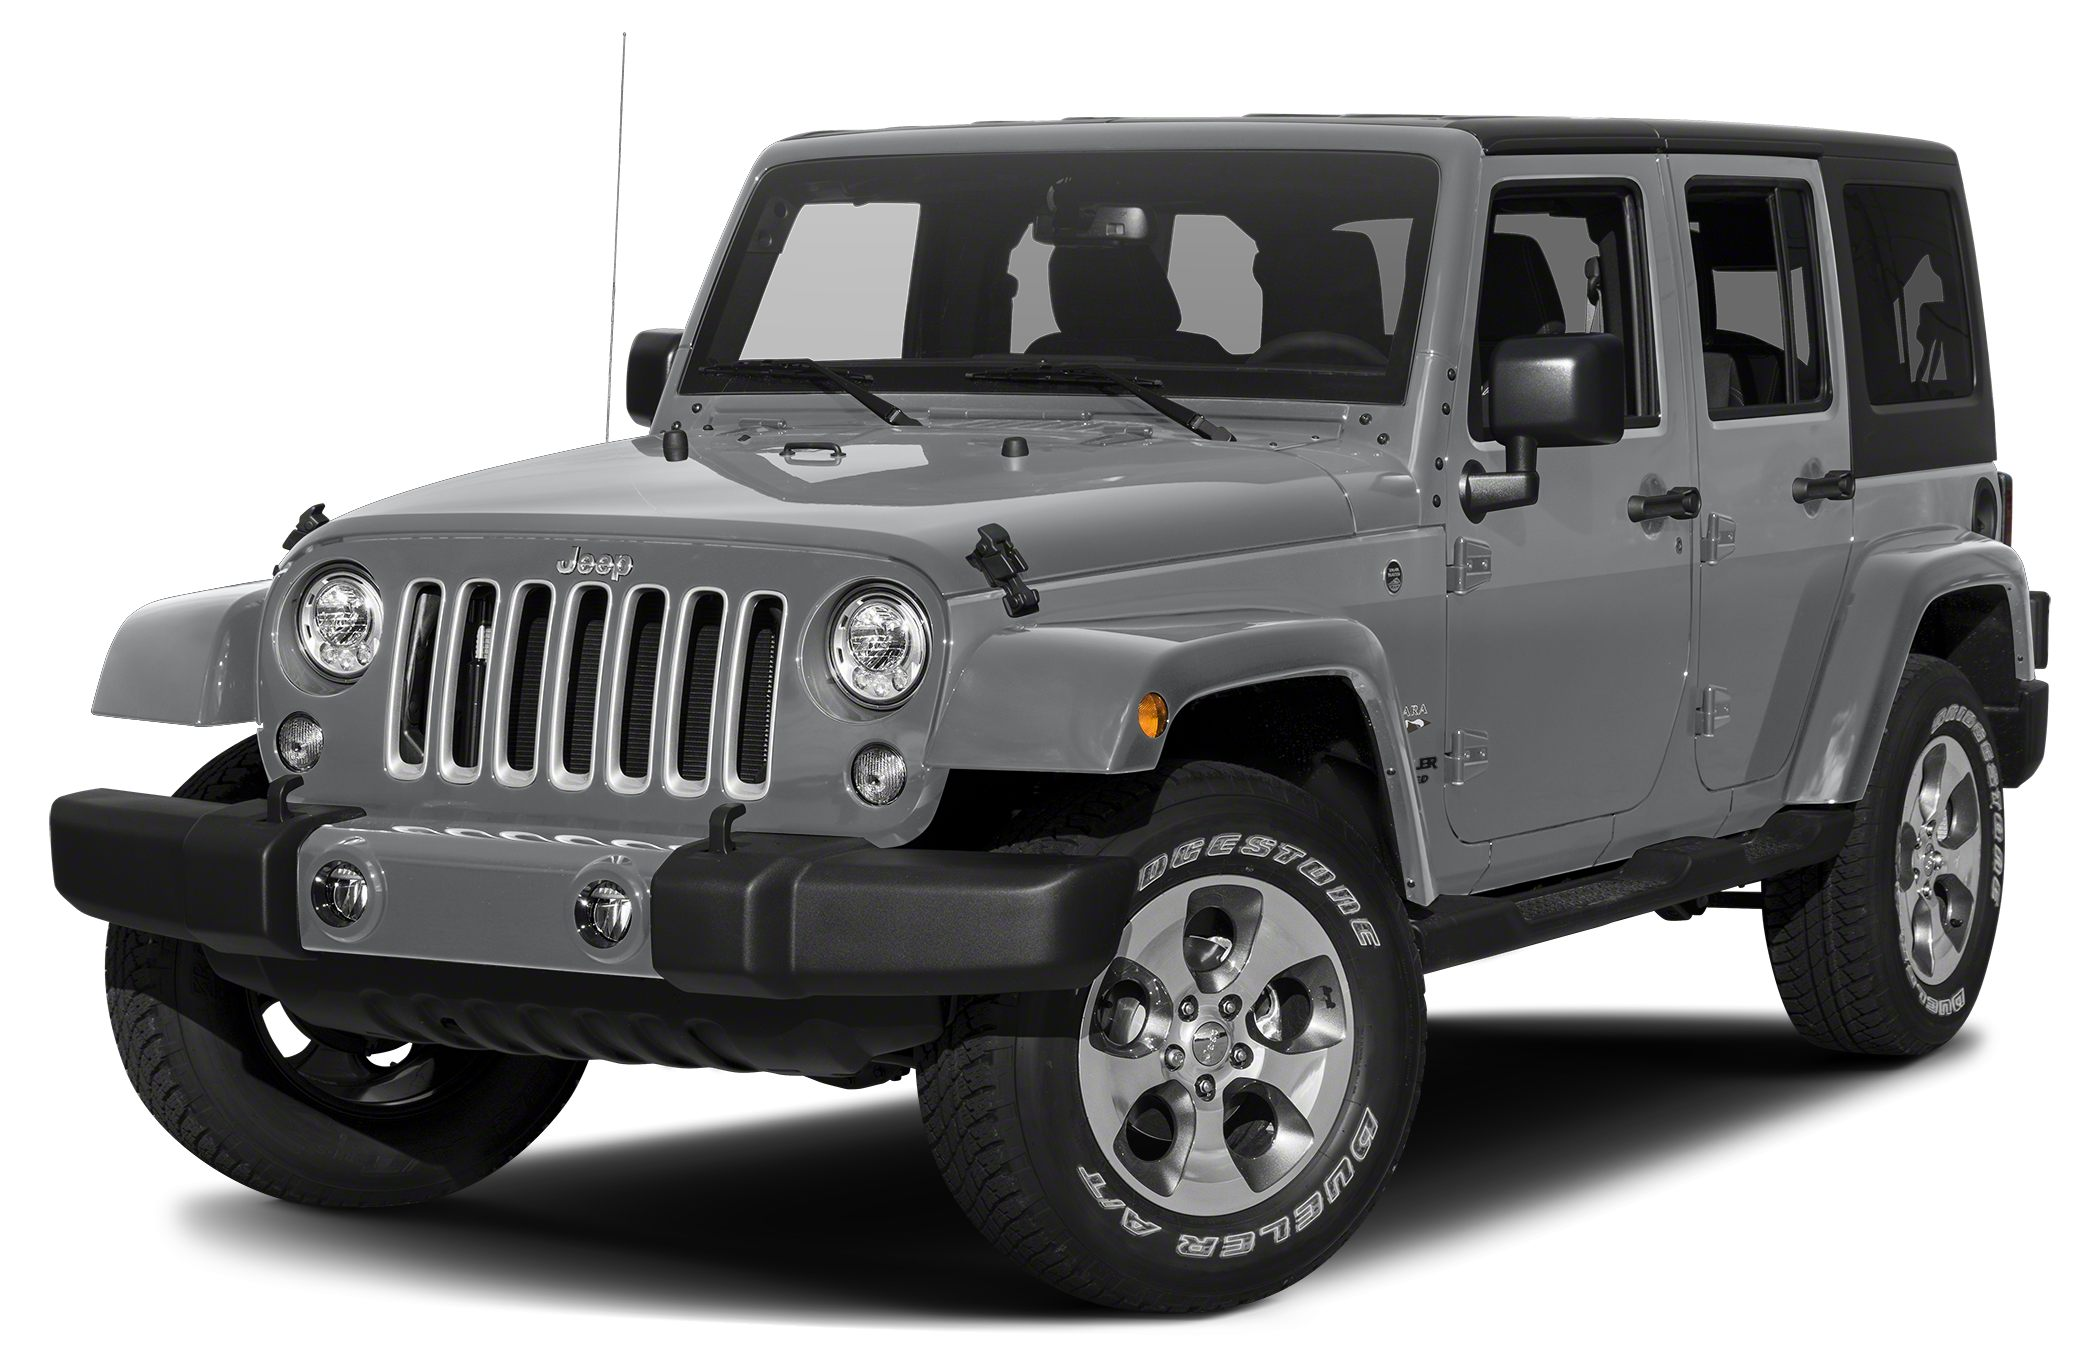 2017 Jeep Wrangler Unlimited Sahara 2017 Jeep Wrangler Unlimited Sahara in Billet Silver Metallic